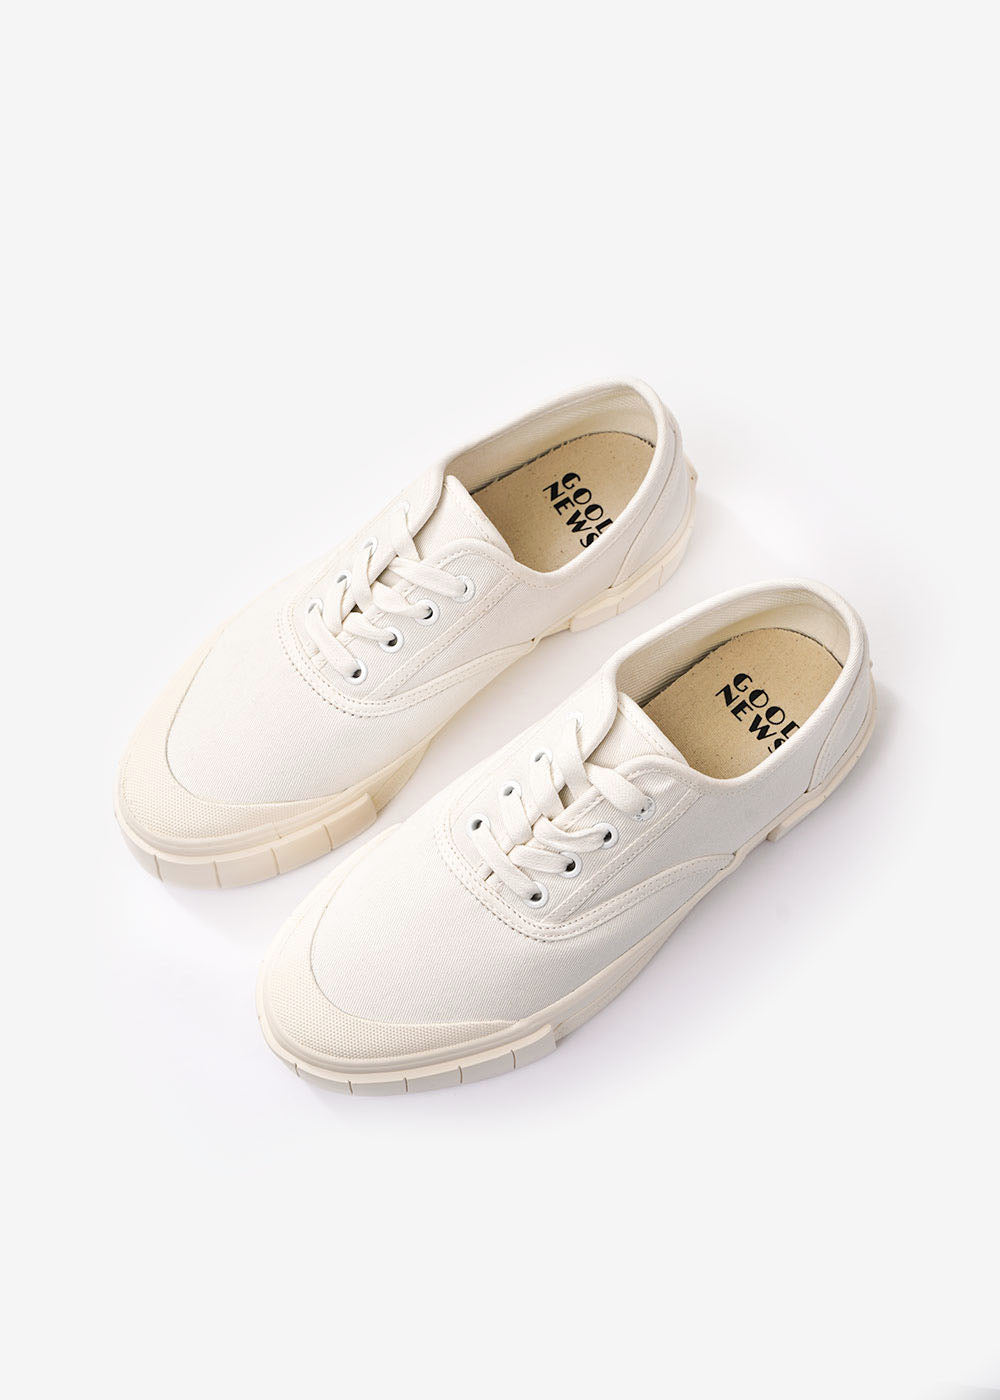 GOOD NEWS Off White Bagger 2 Low Sneakers — Shop sustainable fashion and slow fashion at New Classics Studios